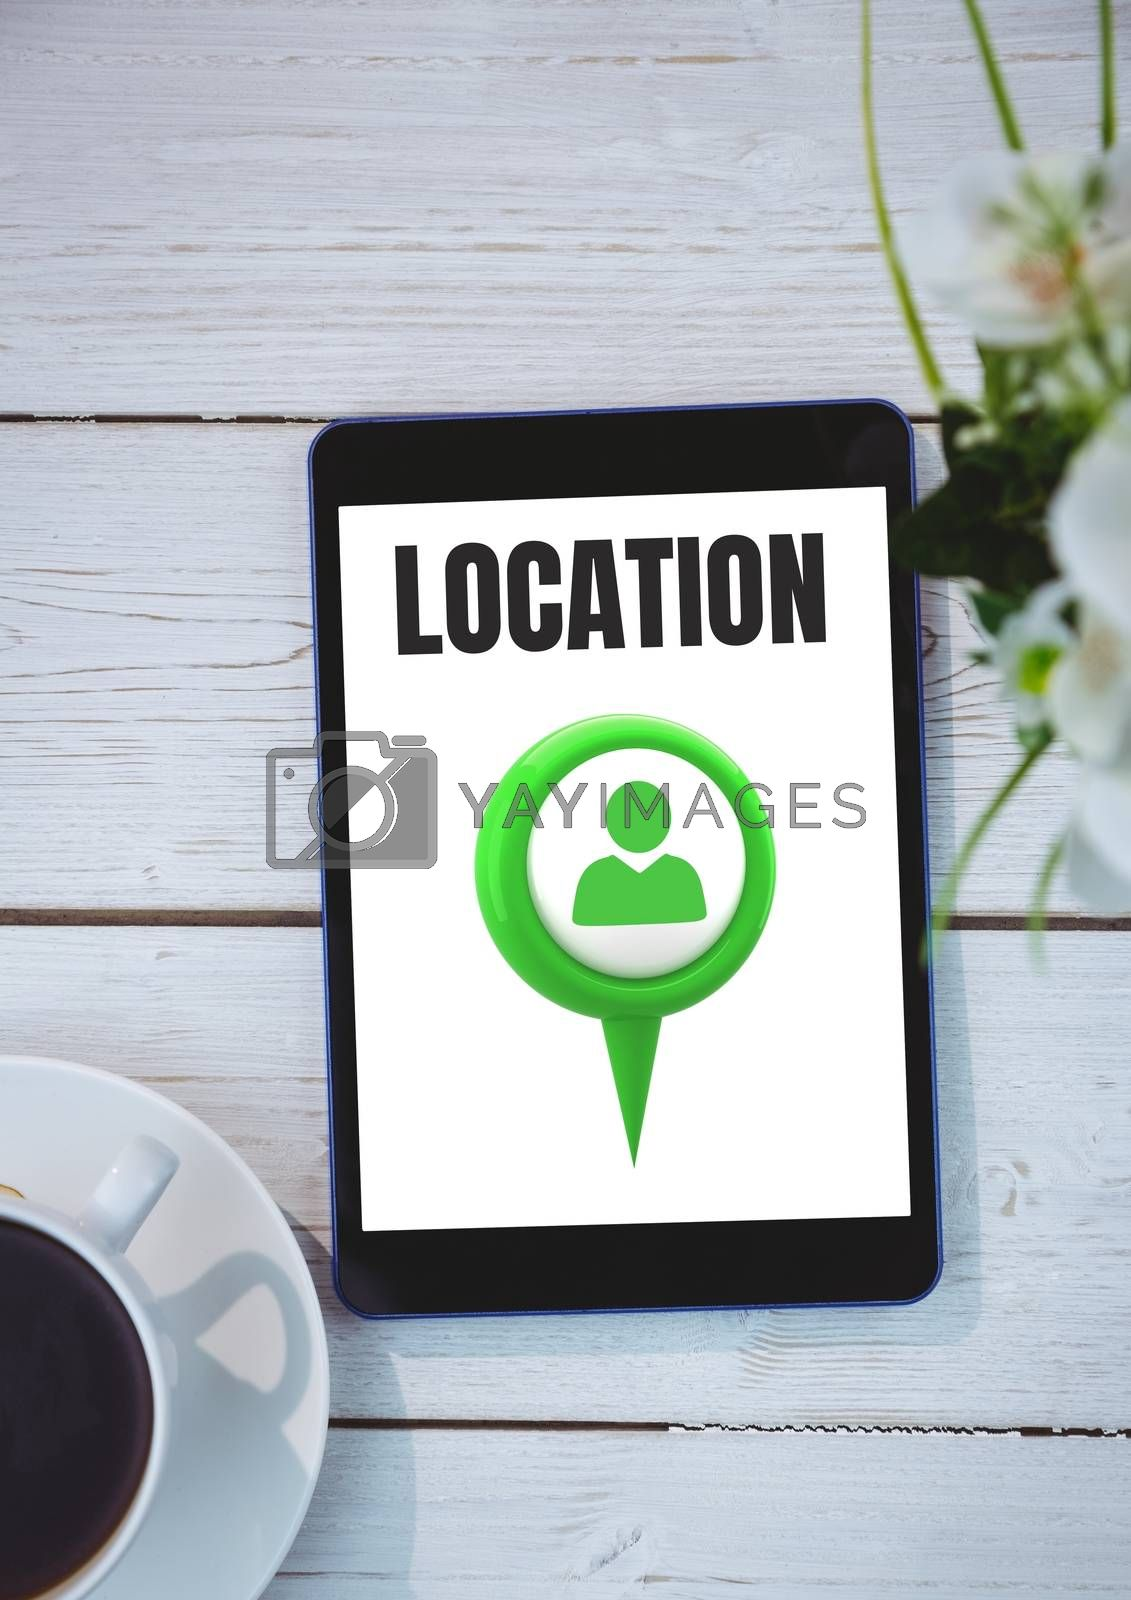 Location marker on phone on table by Wavebreakmedia